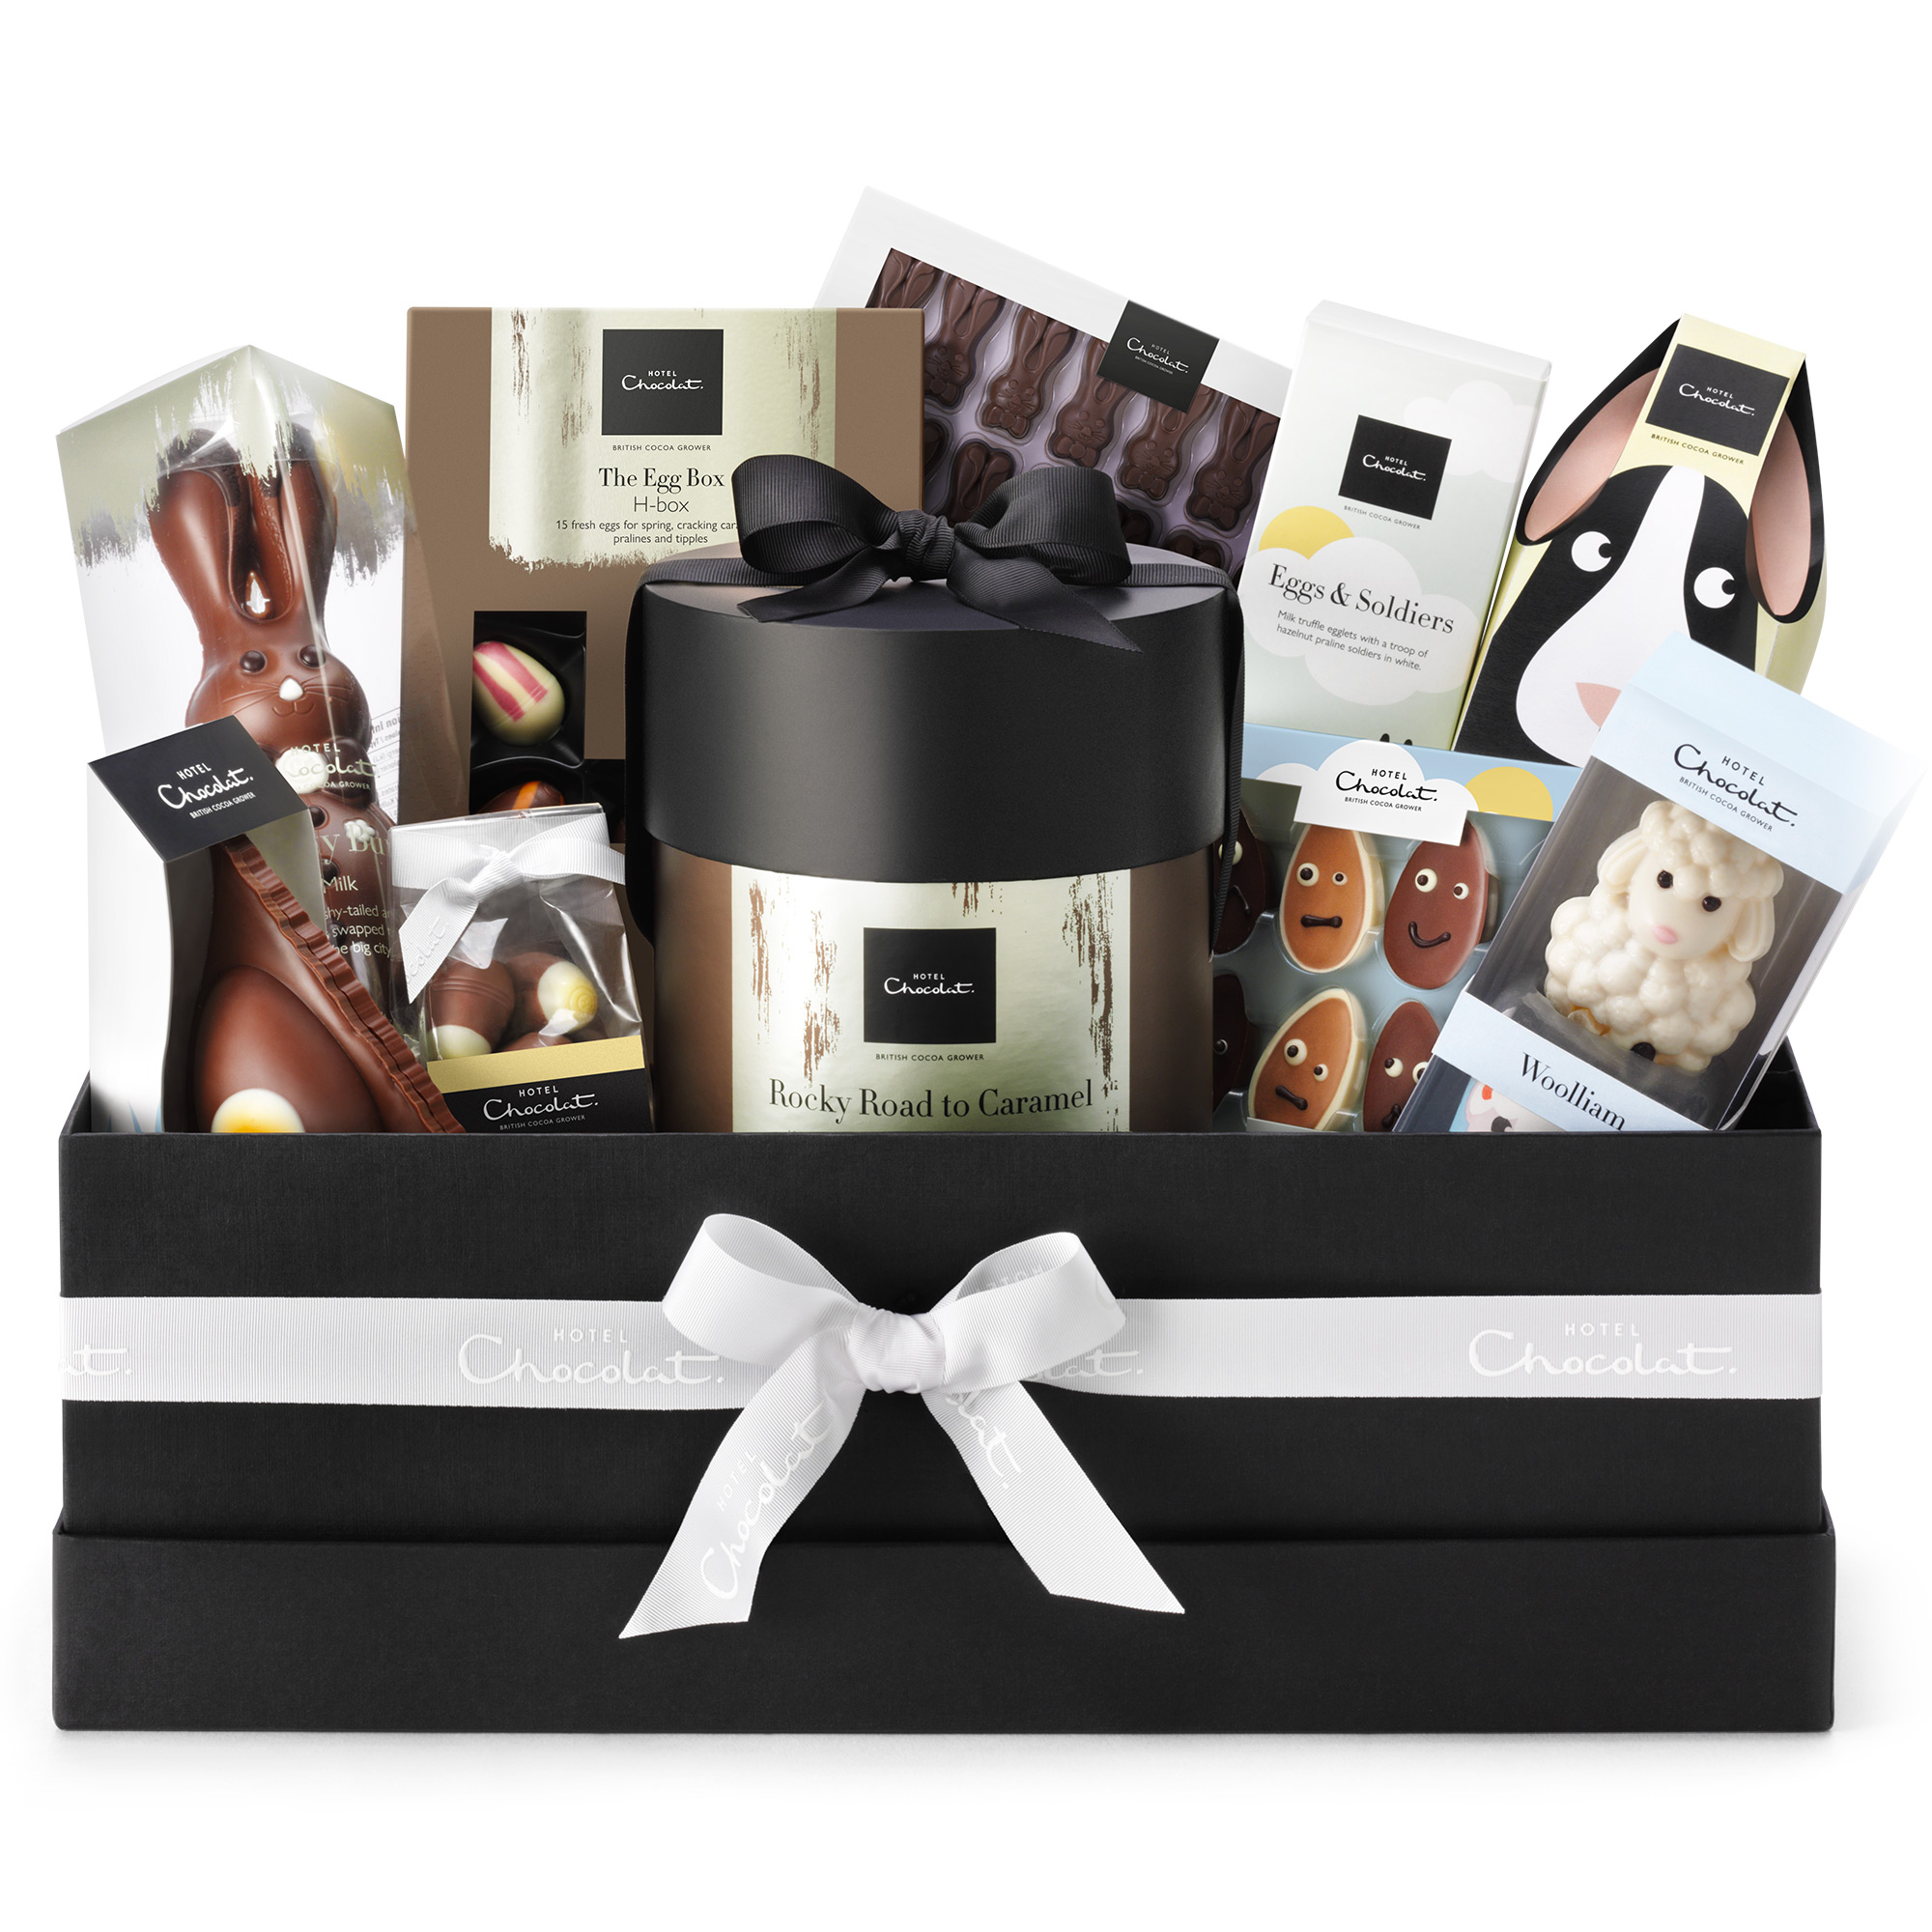 Free hotel chocolat easter hampers gratisfaction uk negle Gallery